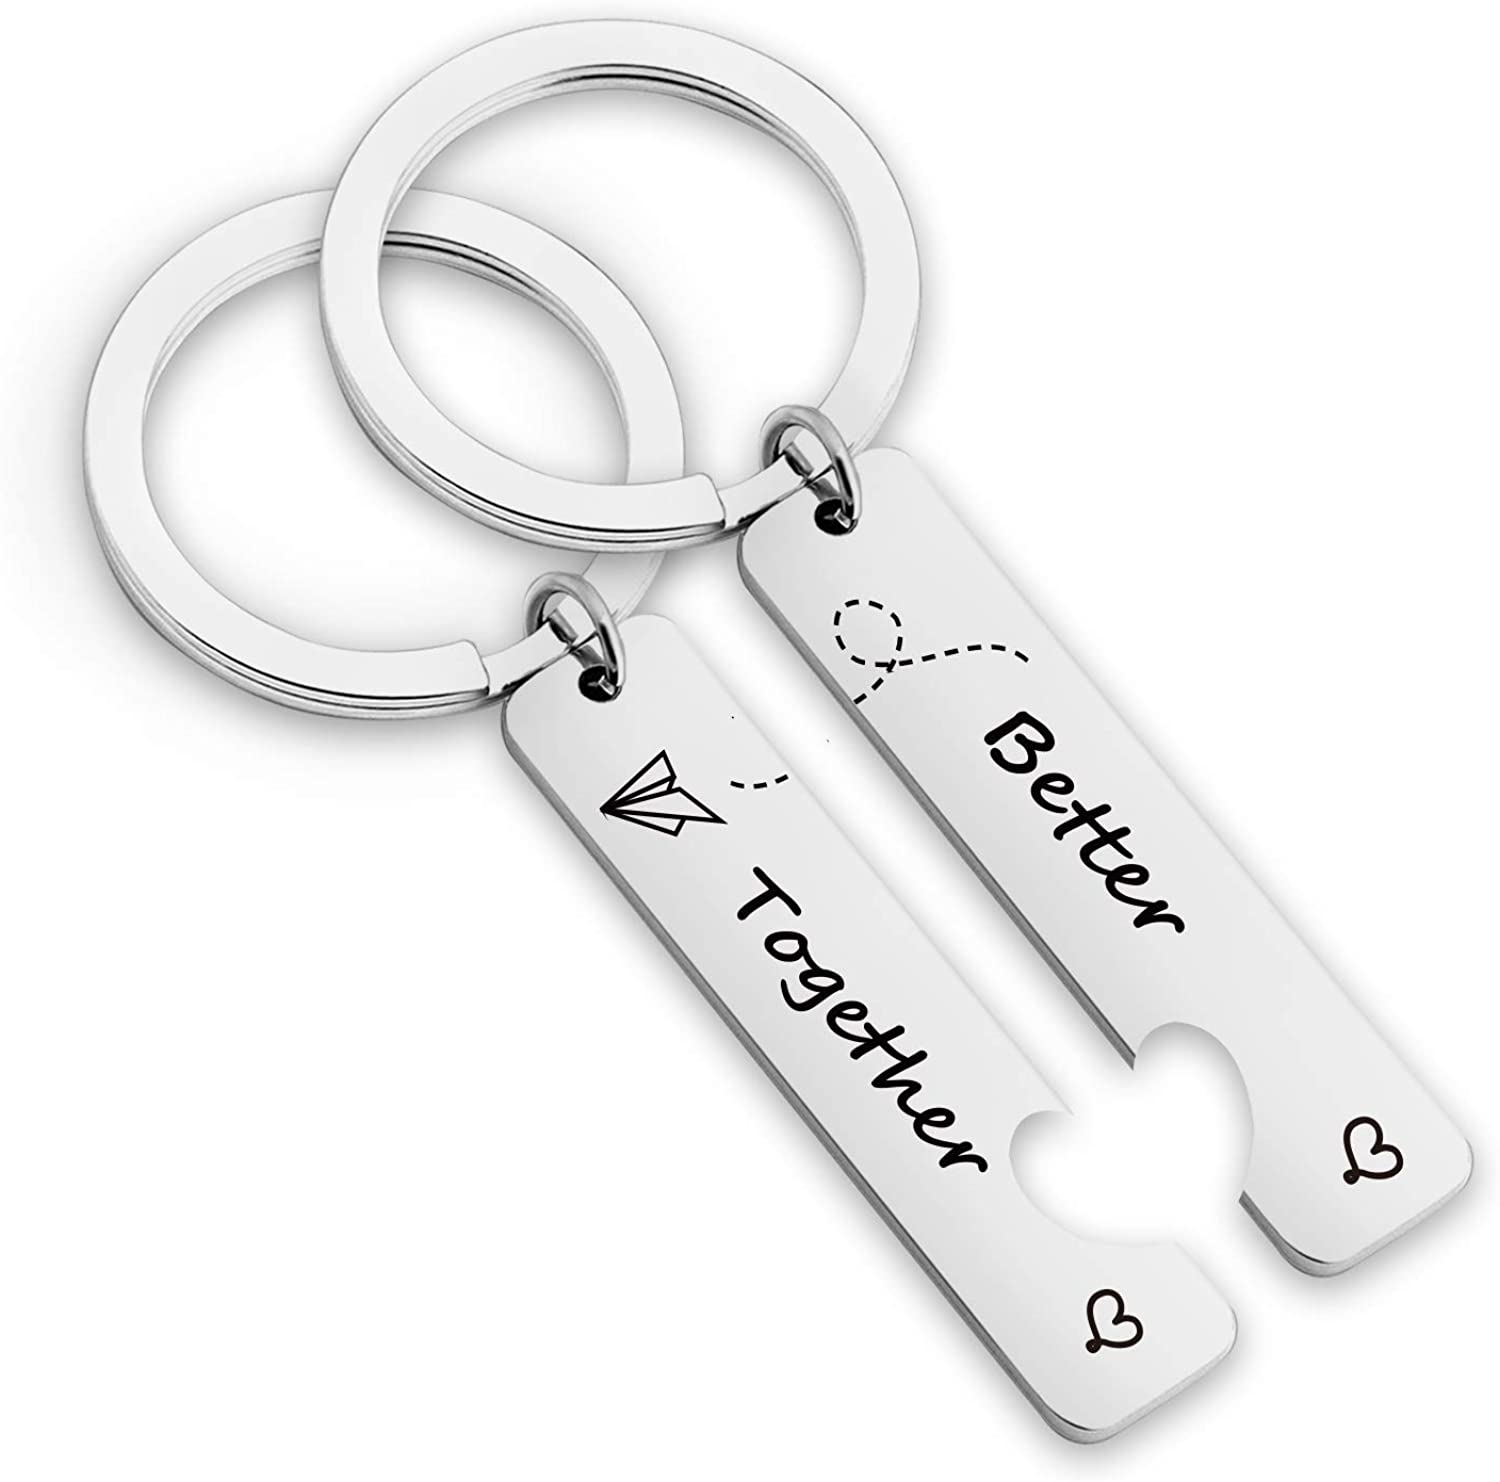 EIGSO Relationship Keychain Better Together Long Distance Matching Heart Keychain for Distant Couples